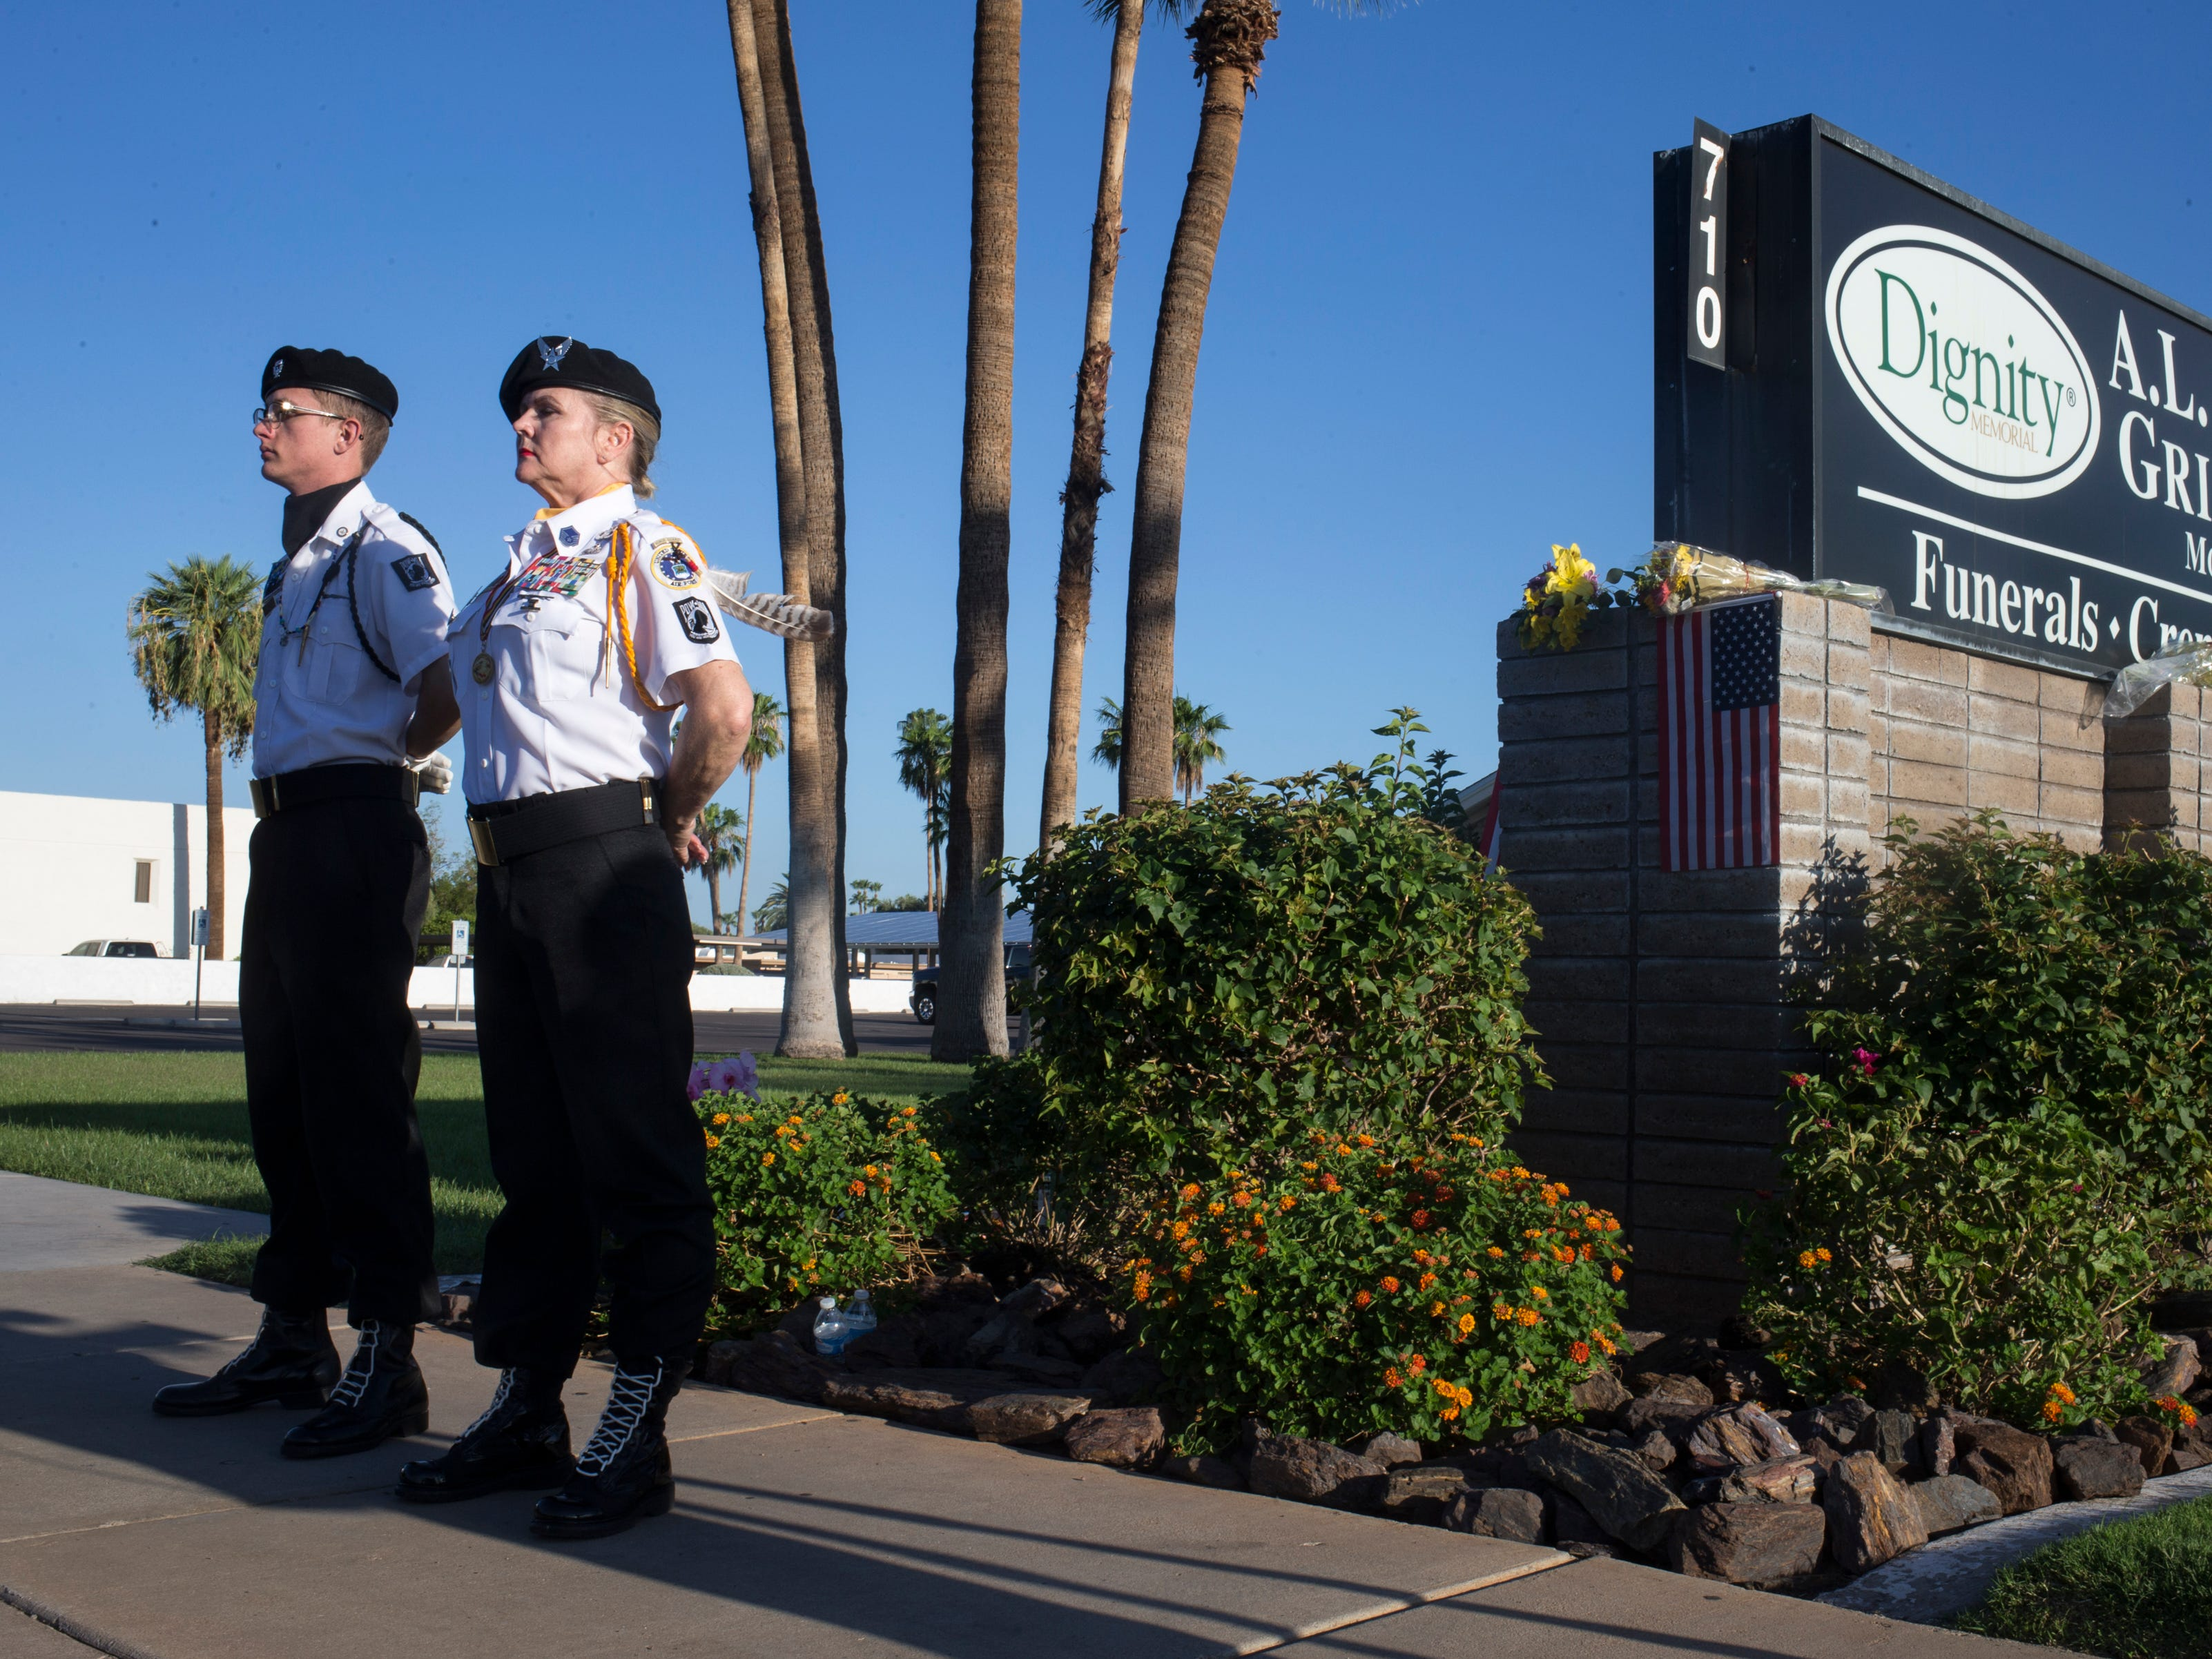 POW/MIA/KIA Honor Guard members Darlene Tryon (right) and Aaron Cartland stand watch at a makeshift memorial at the A. L. Moore Grimshaw Mortuary, Aug. 26, 2018, at 710 W. Bethany Home Road, in Phoenix.